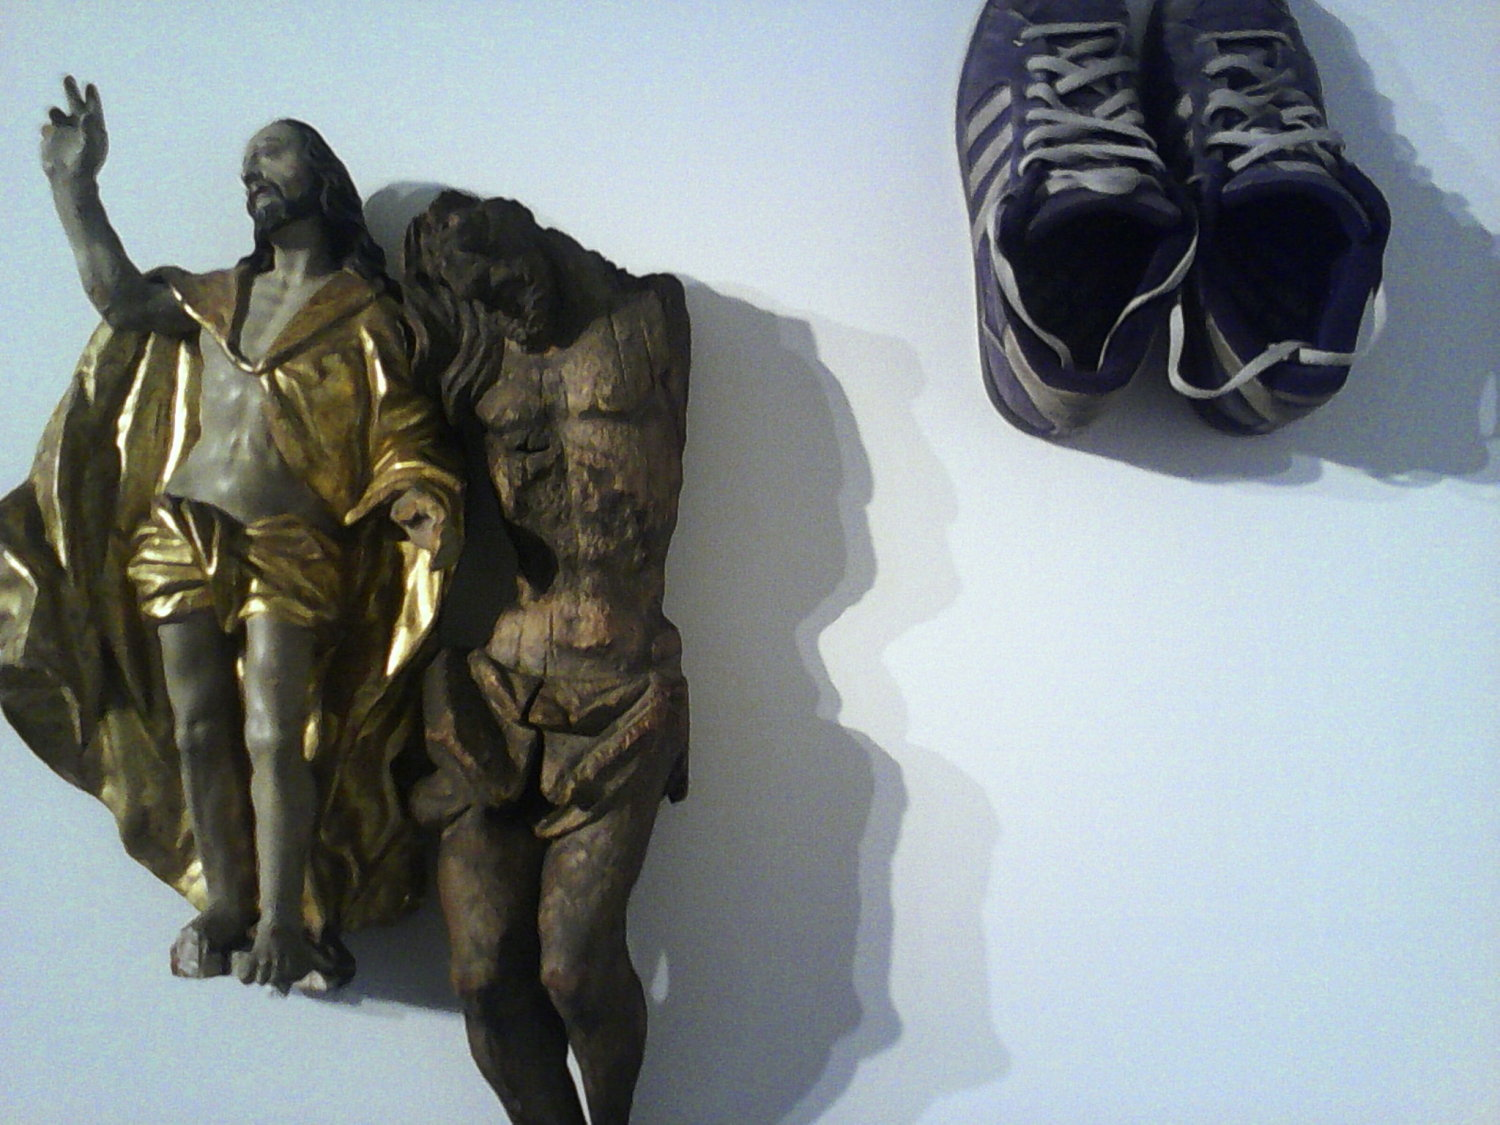 Clemens Krauss: Detail der Installation aus Christusfiguren und Schuhen, MARTa Herford, Foto: johnicon, courtesy of the artist